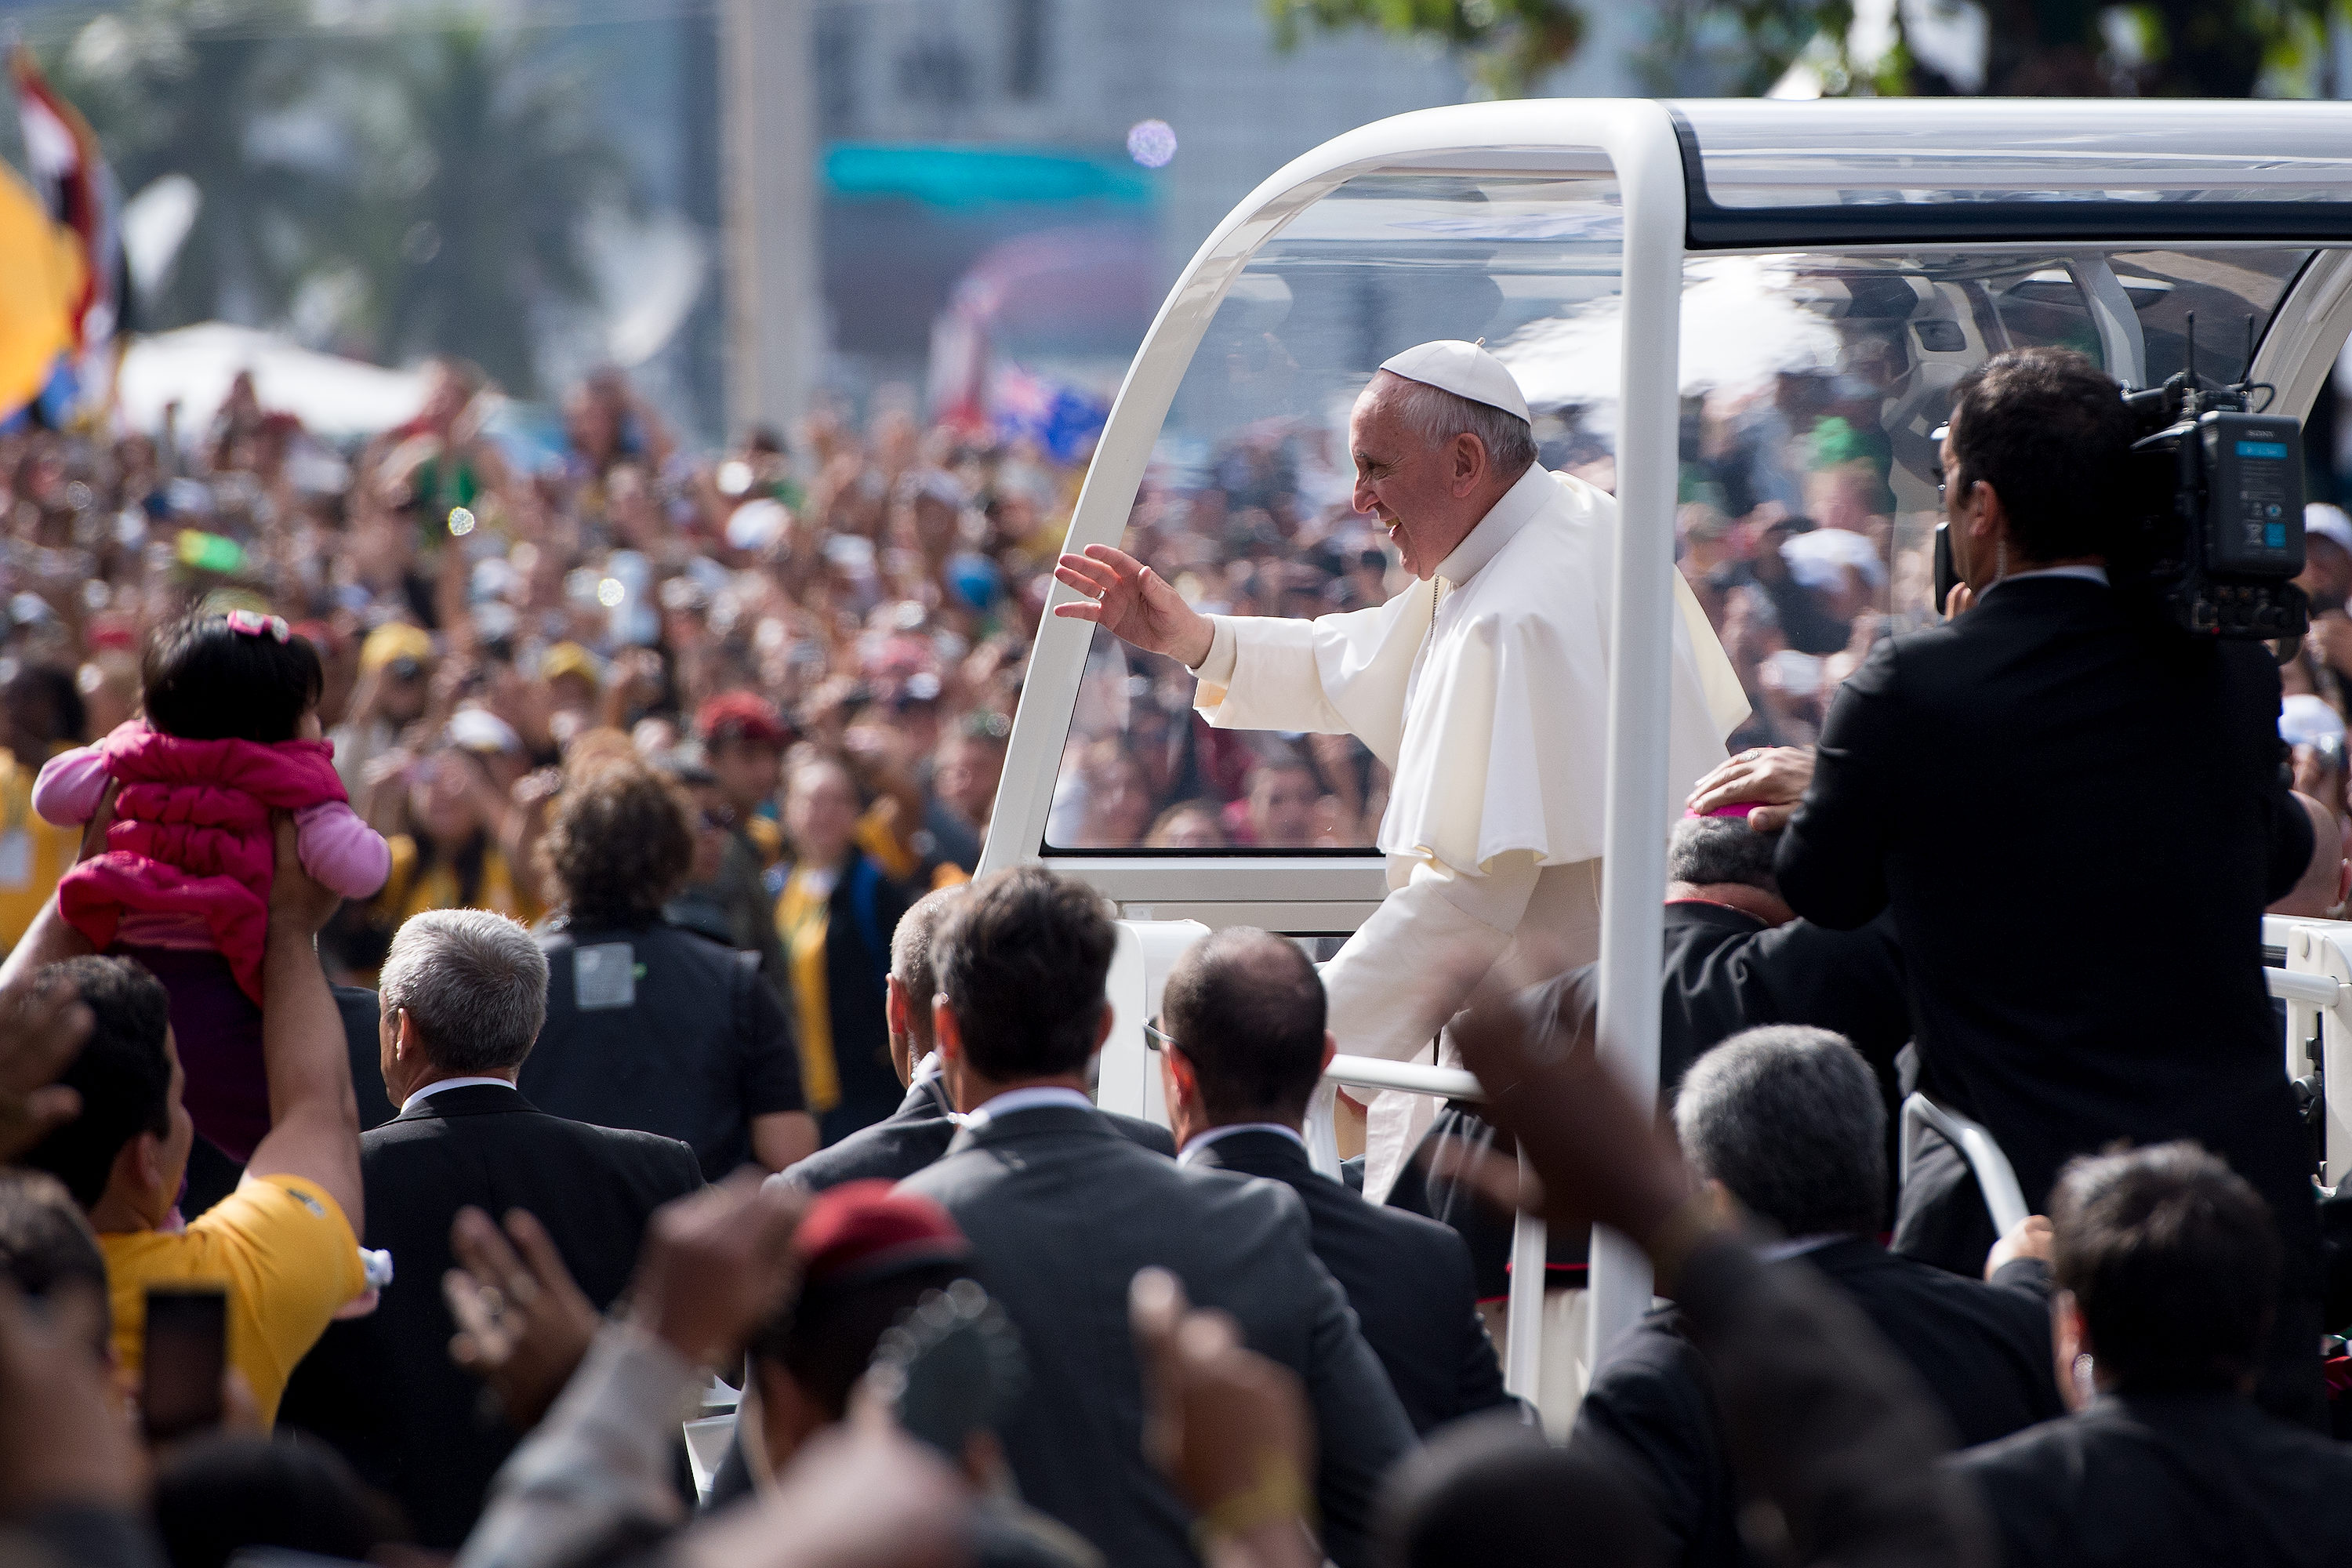 Pope Francis waves from the Popemobile as he heads to celebrate Mass for the Catholic Church's World Youth Day celebrations.